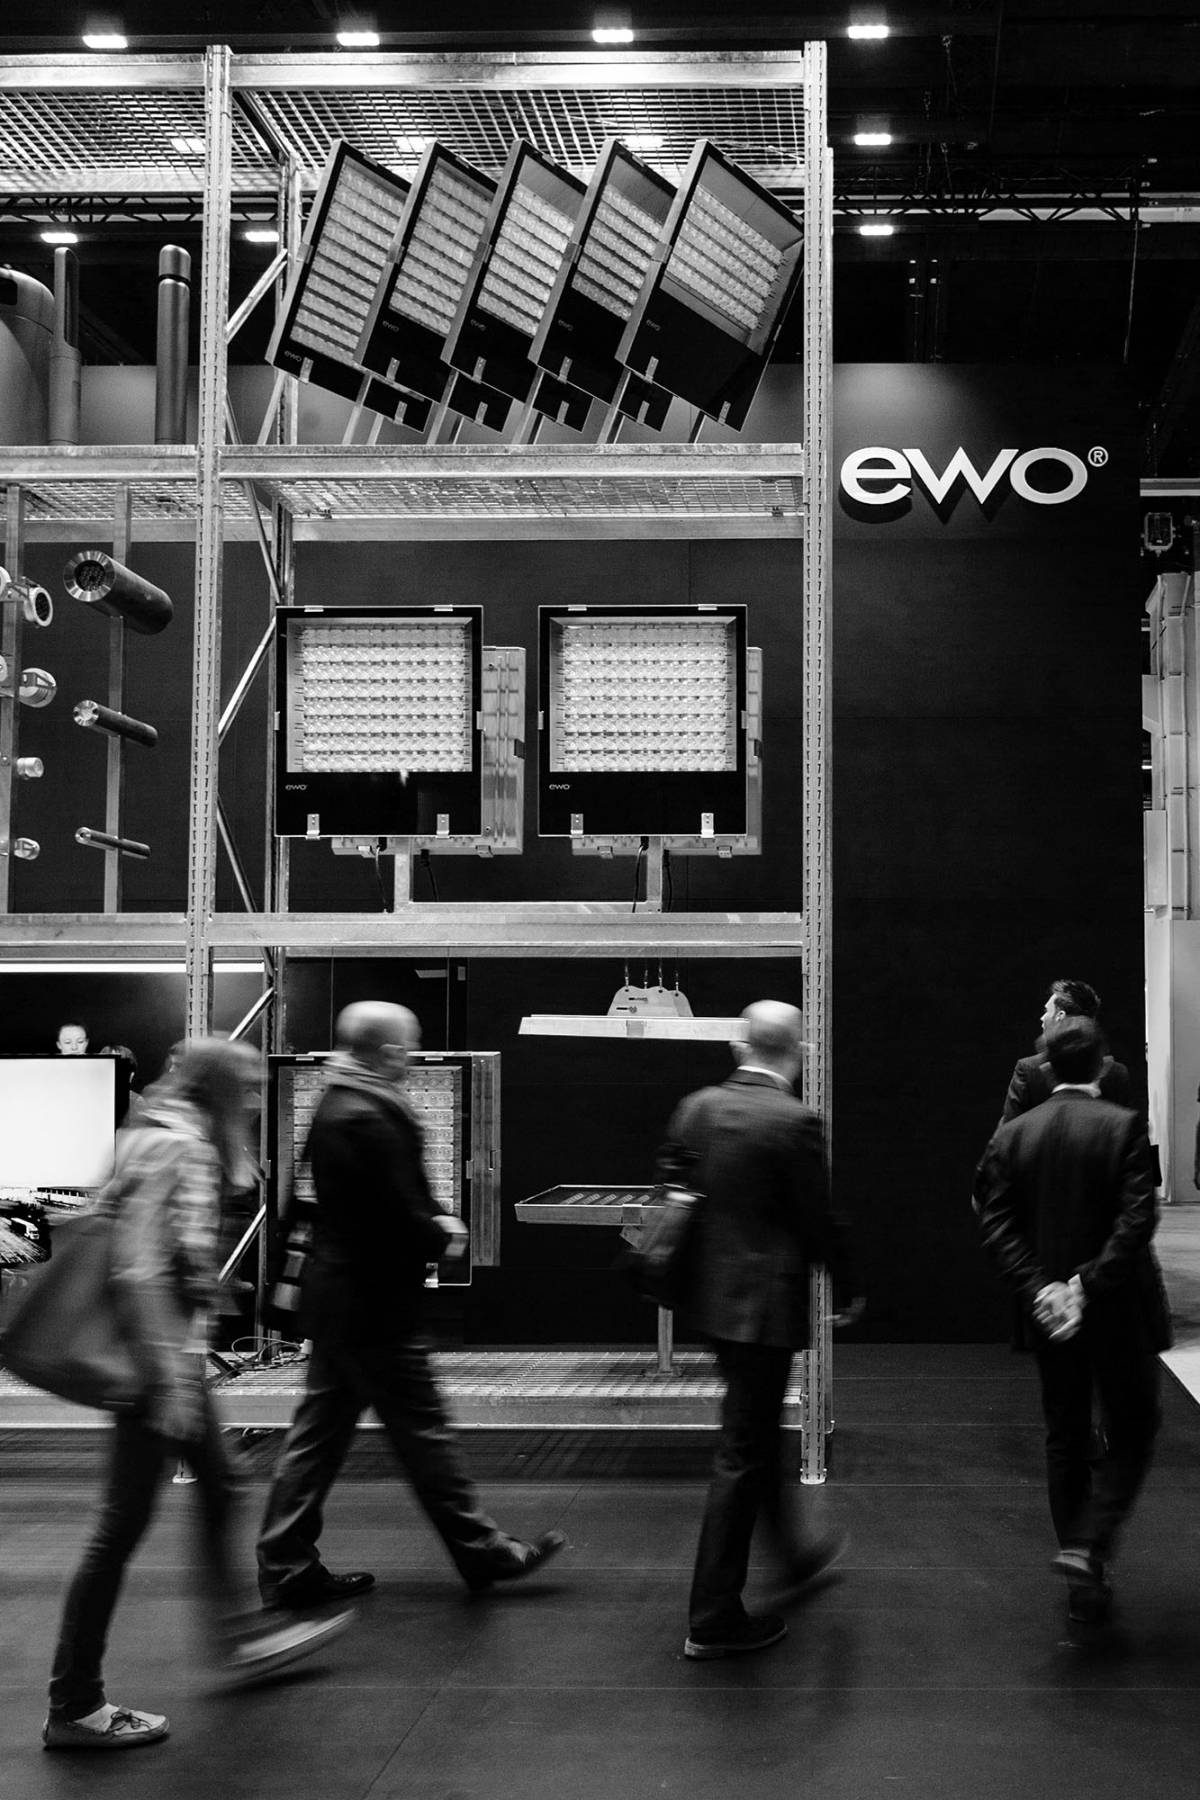 ewo Light and Building 2014